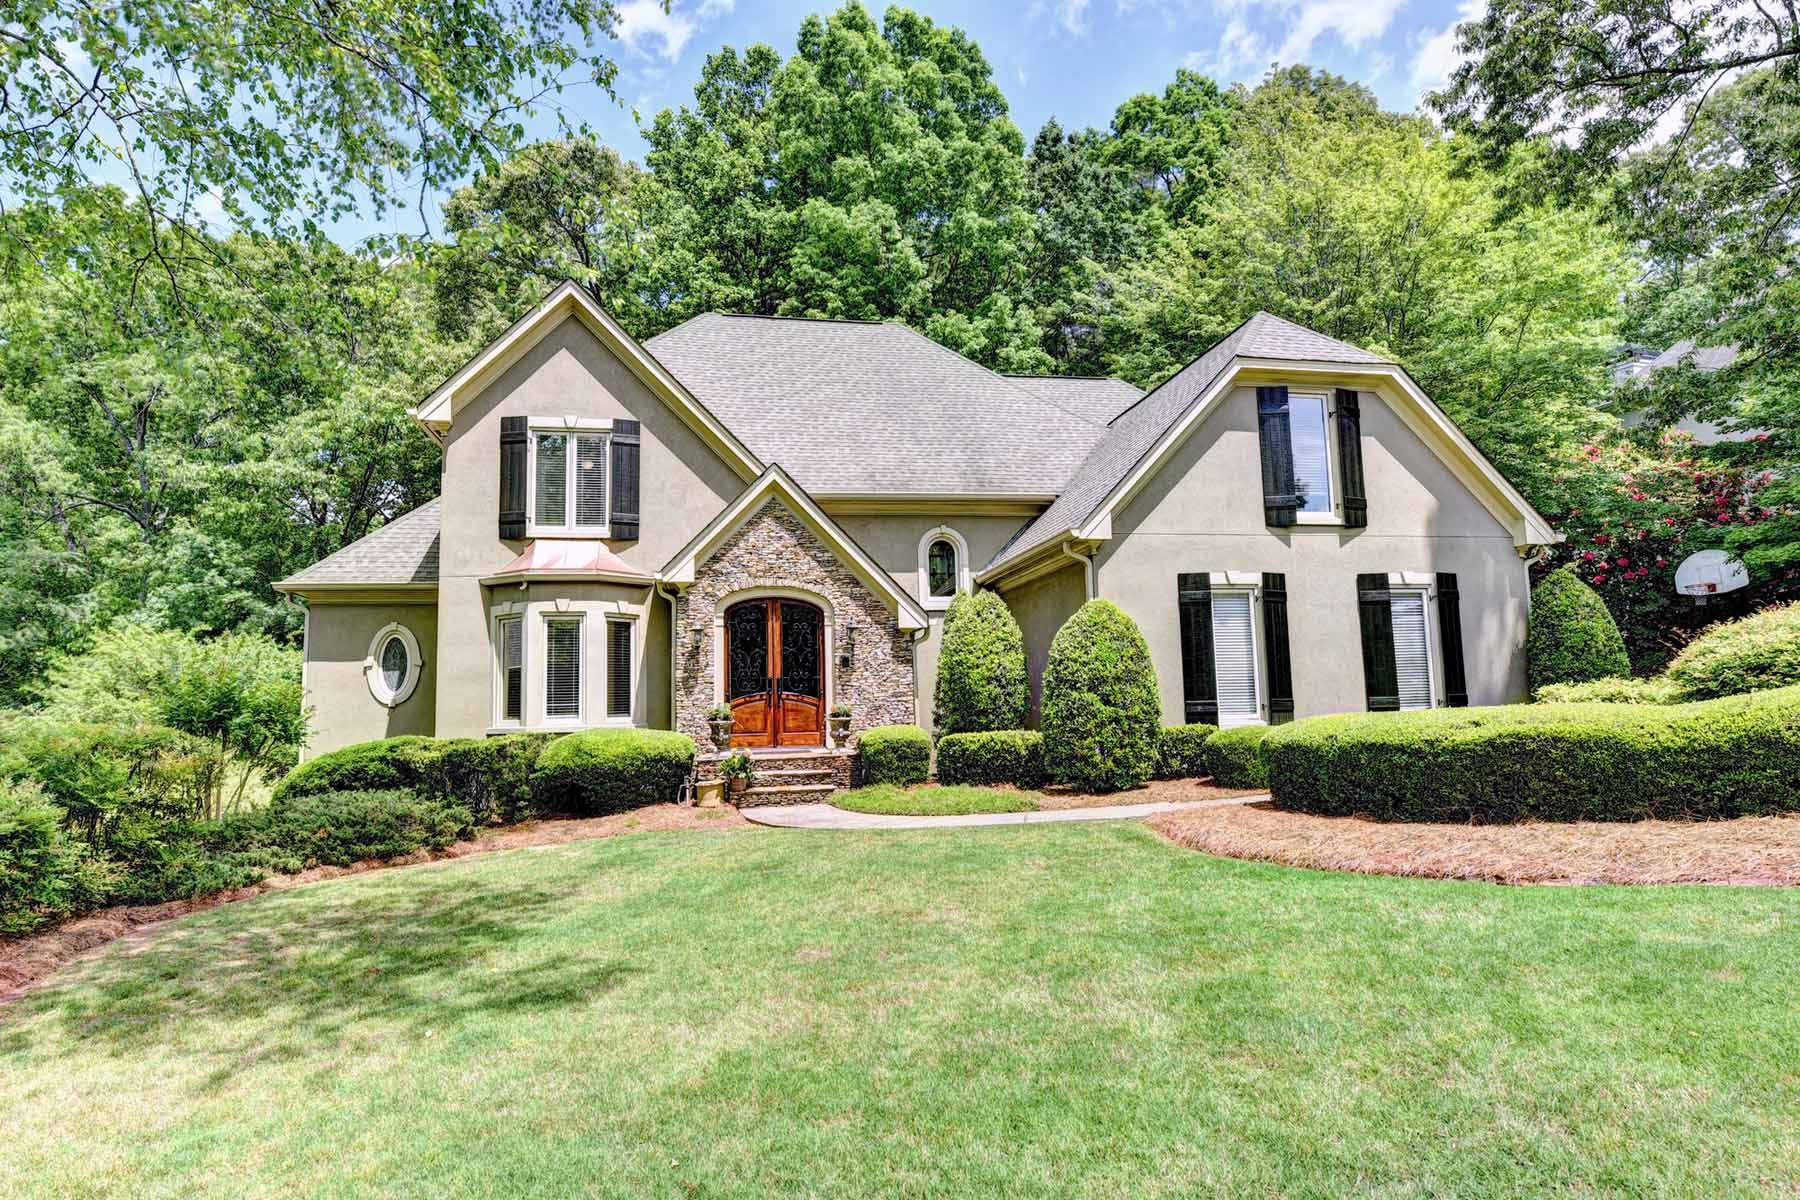 Частный односемейный дом для того Продажа на Gorgeous Owner Suite On Main WIth Beautiful Renovated Kitchen 3620 River Ferry Dr Johns Creek, Джорджия, 30022 Соединенные Штаты